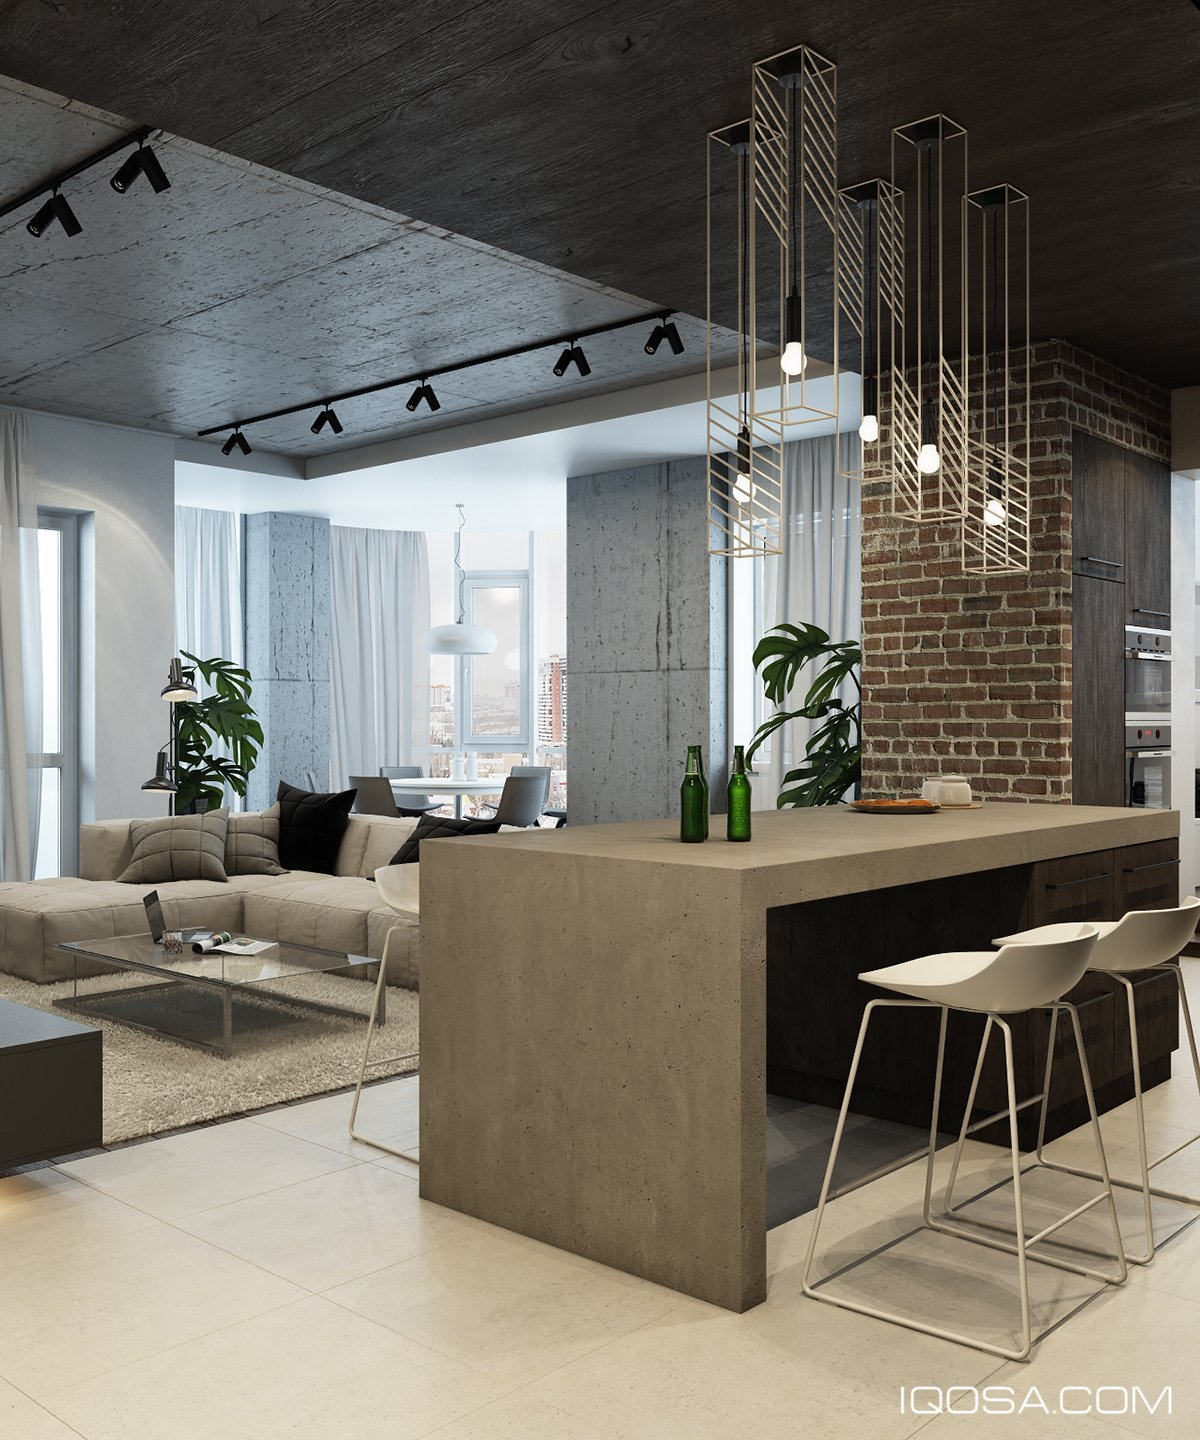 Accent Designs Design A Chic Modern Space Around A Brick Accent Wall